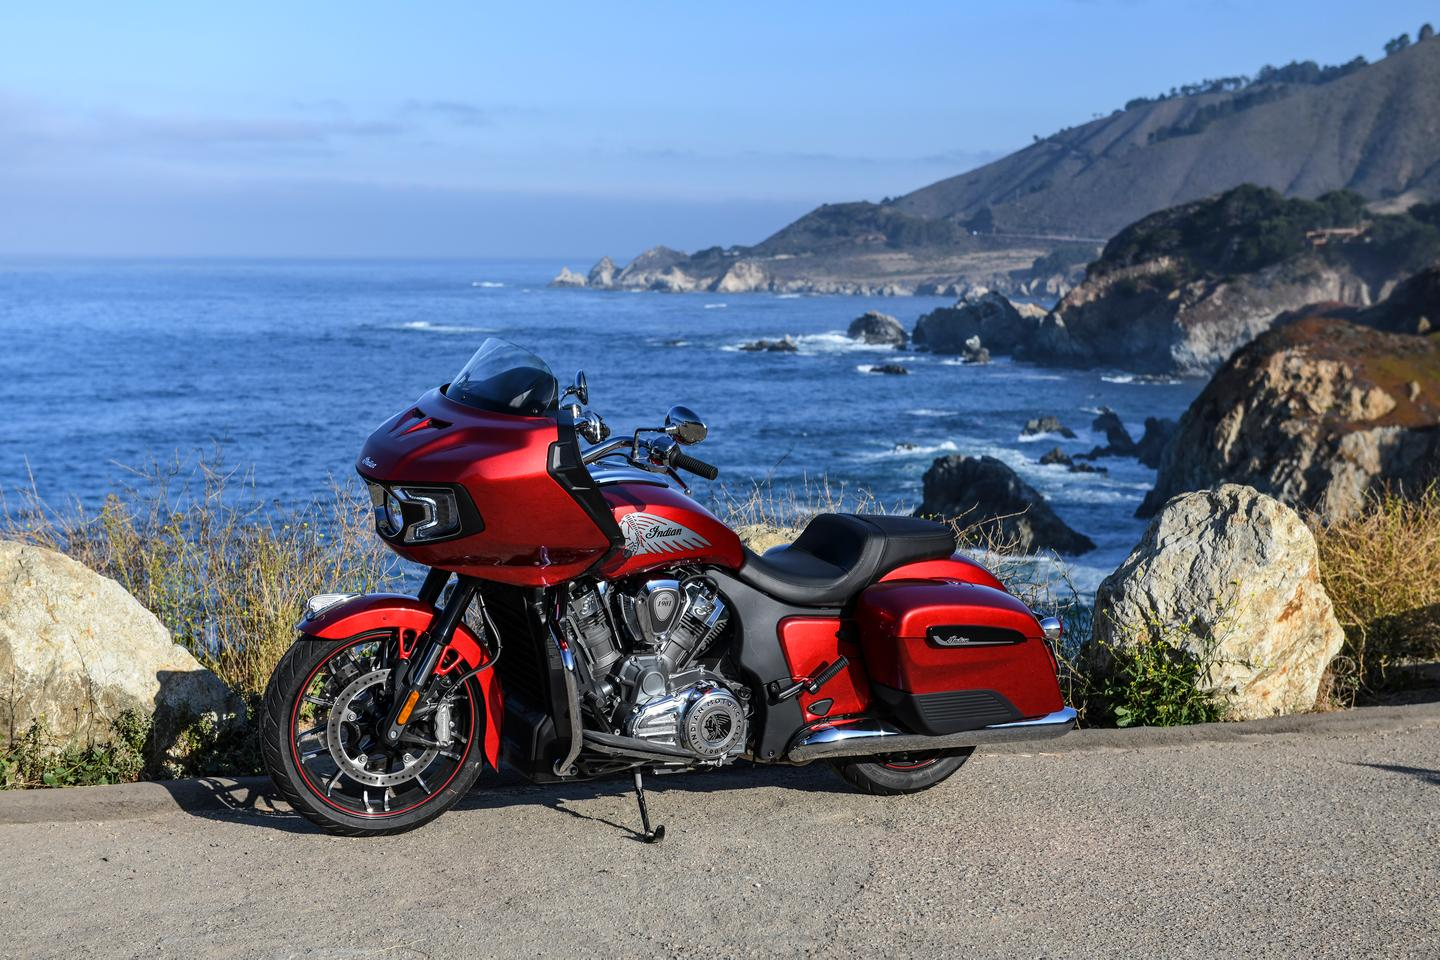 The Challenger is a show across the bows of Harley's Road Glide series